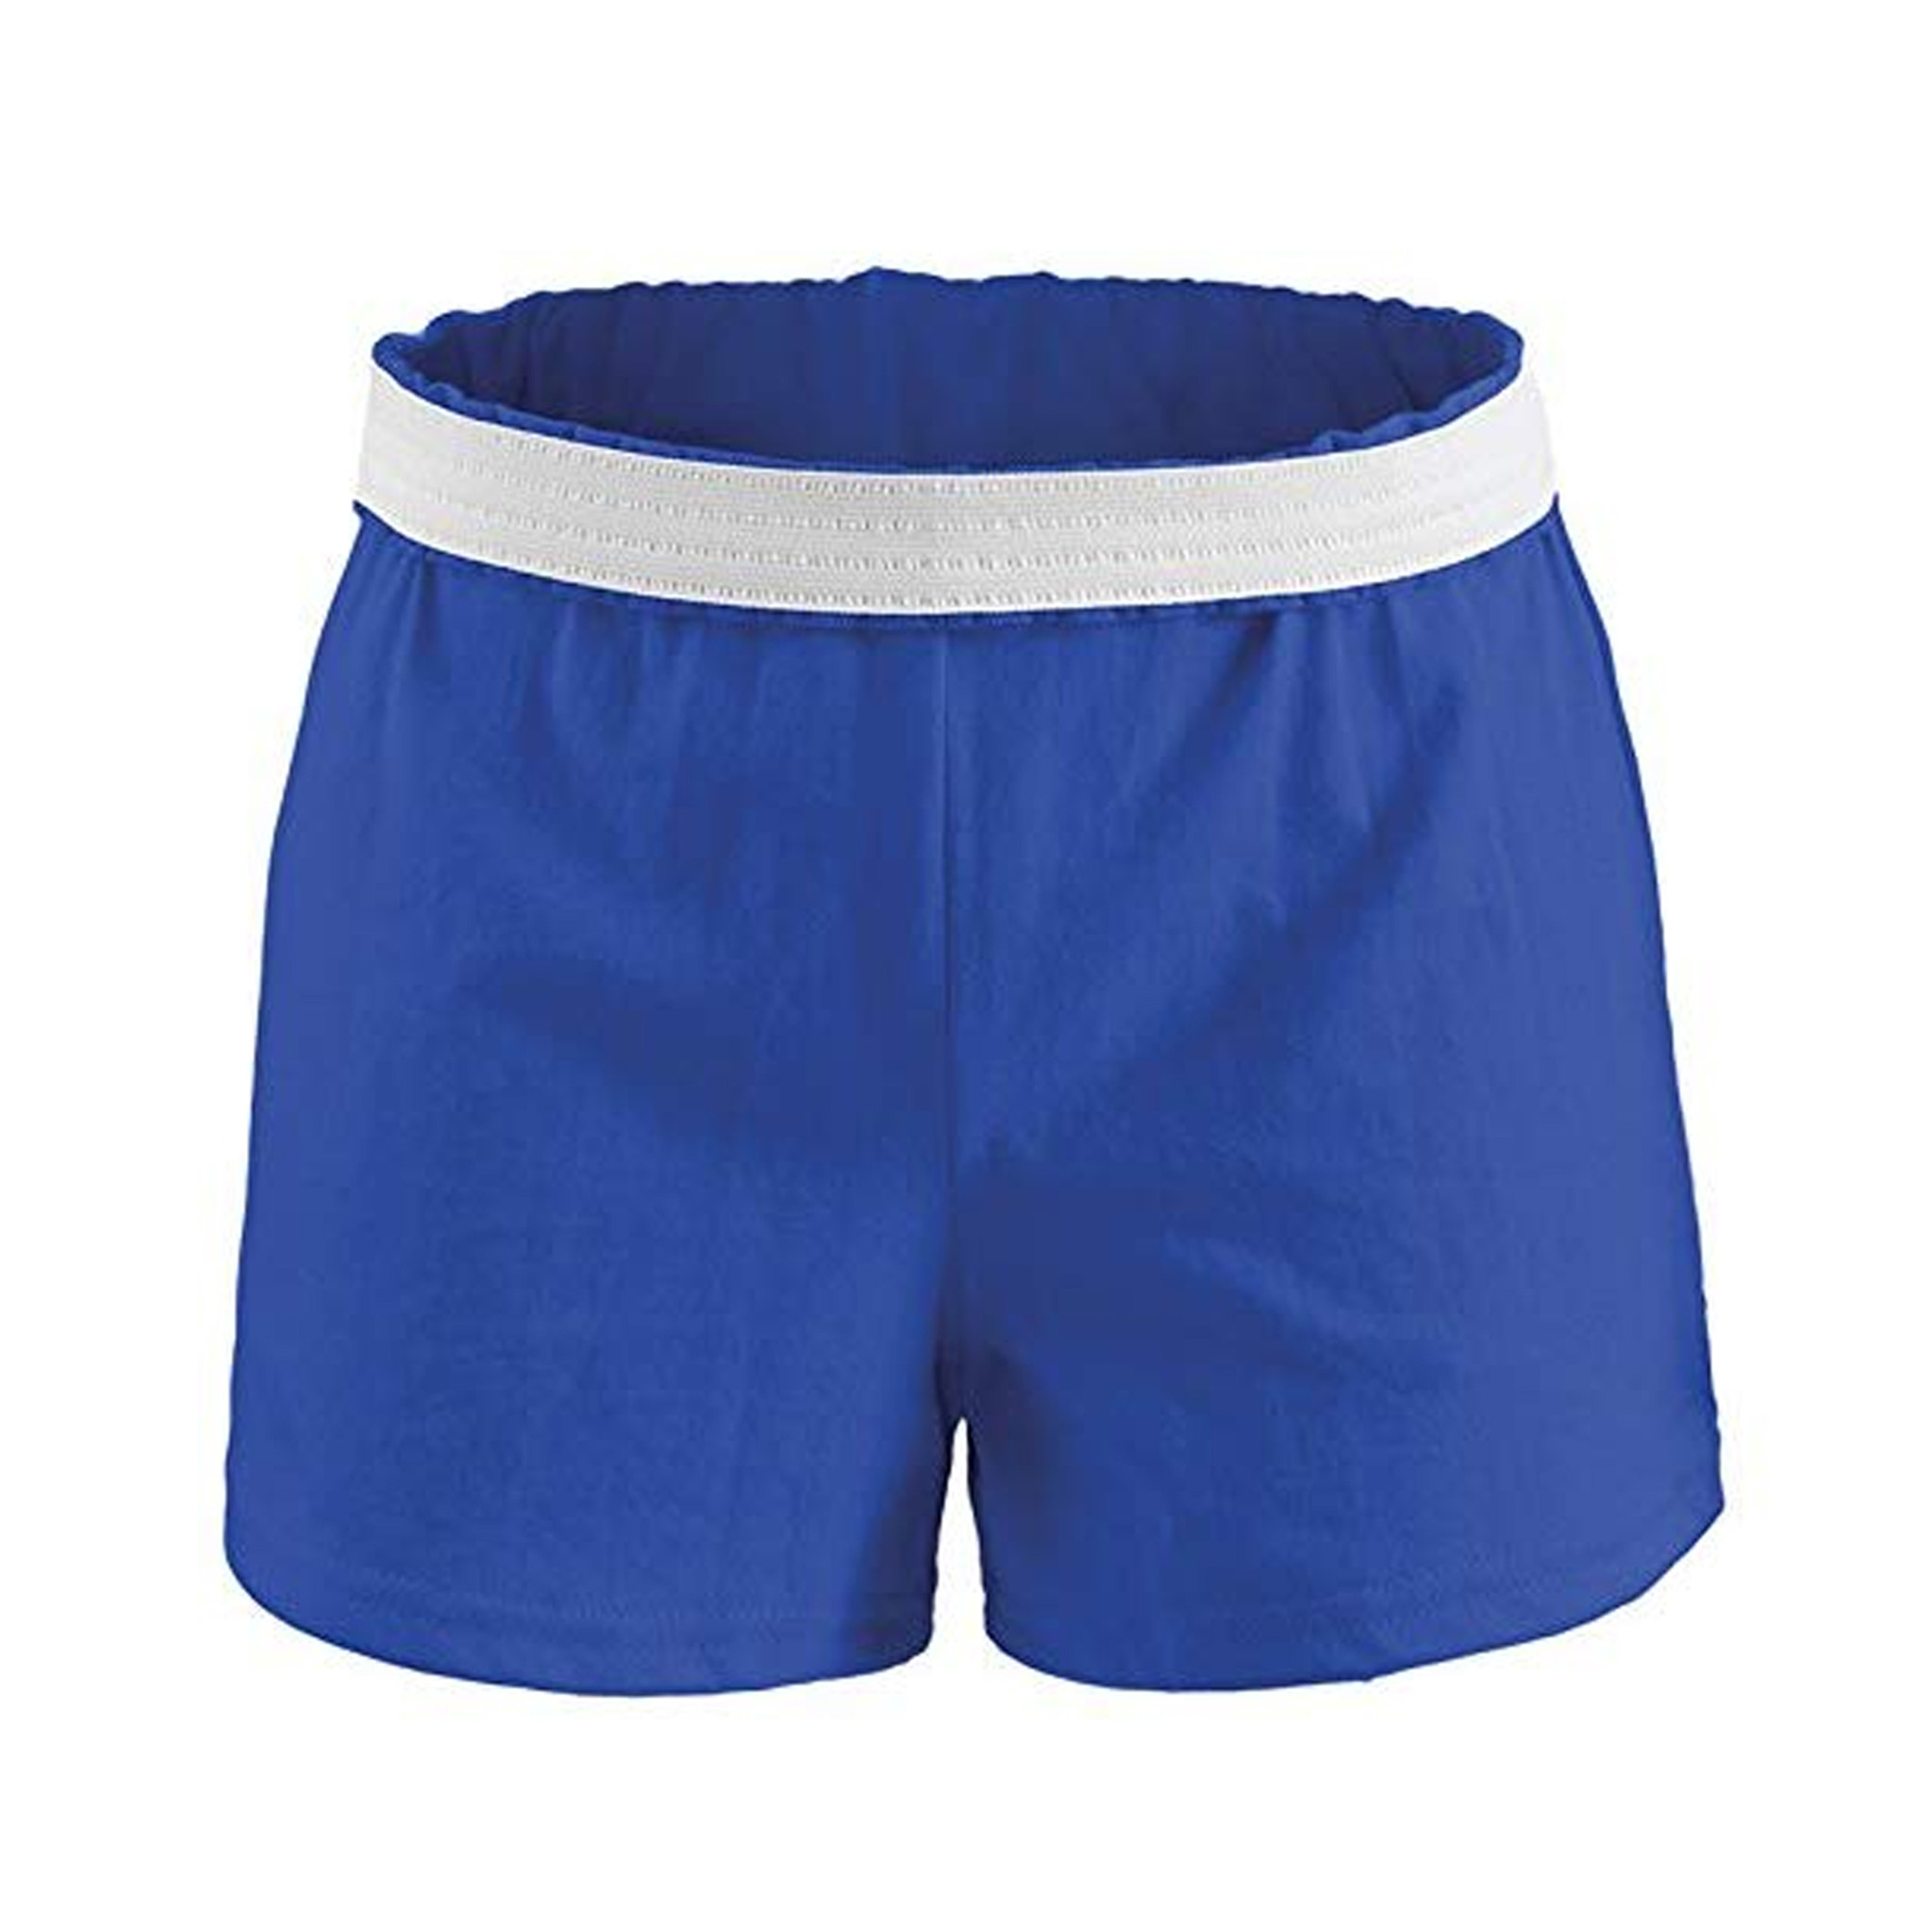 Soffe Shorts in Royal Blue